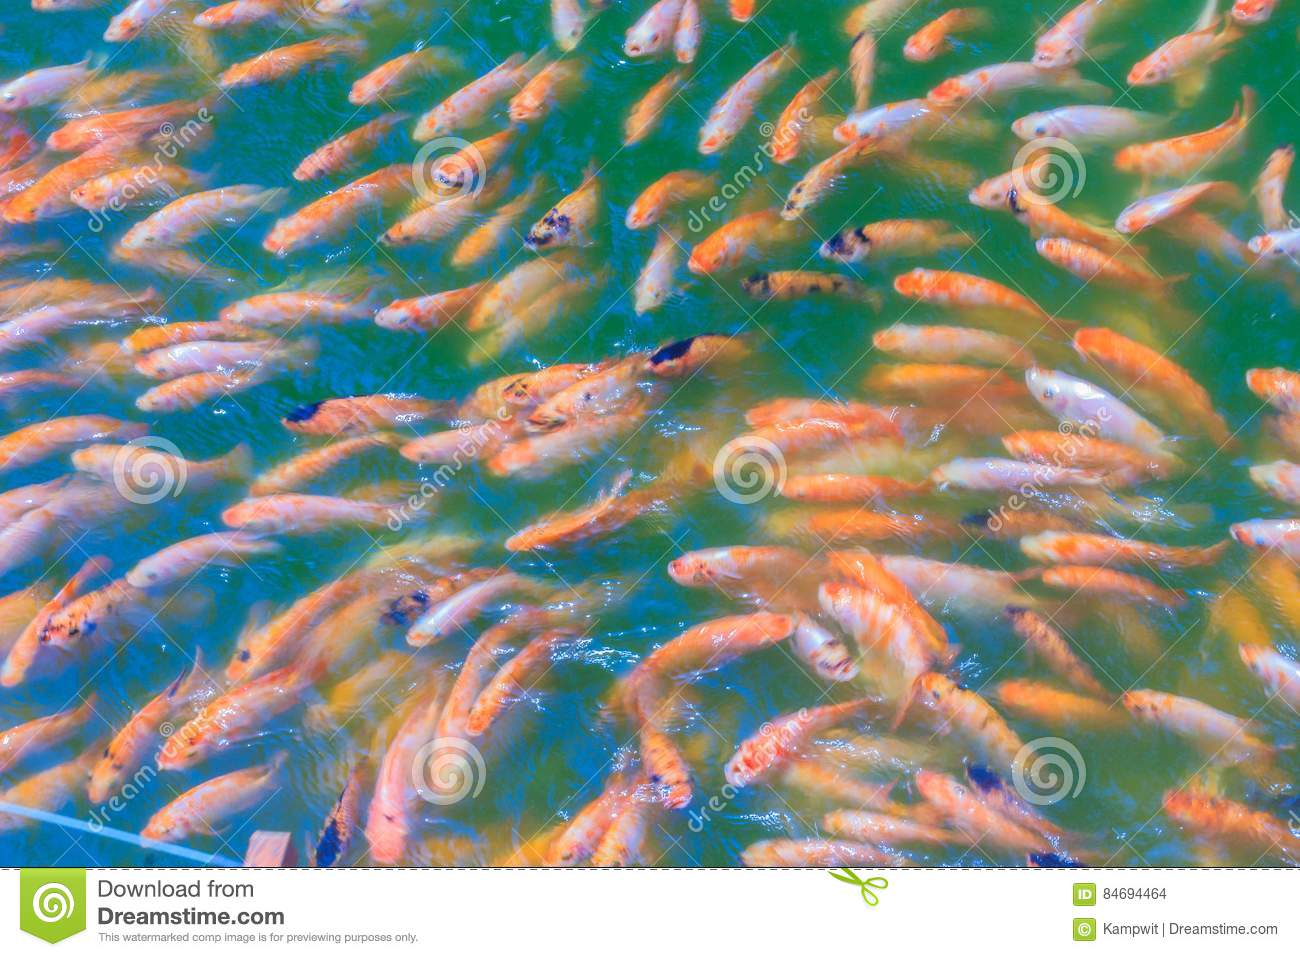 Download School Of Red Orange Perch Tilapia Fish In The Fresh Water Pond Stock